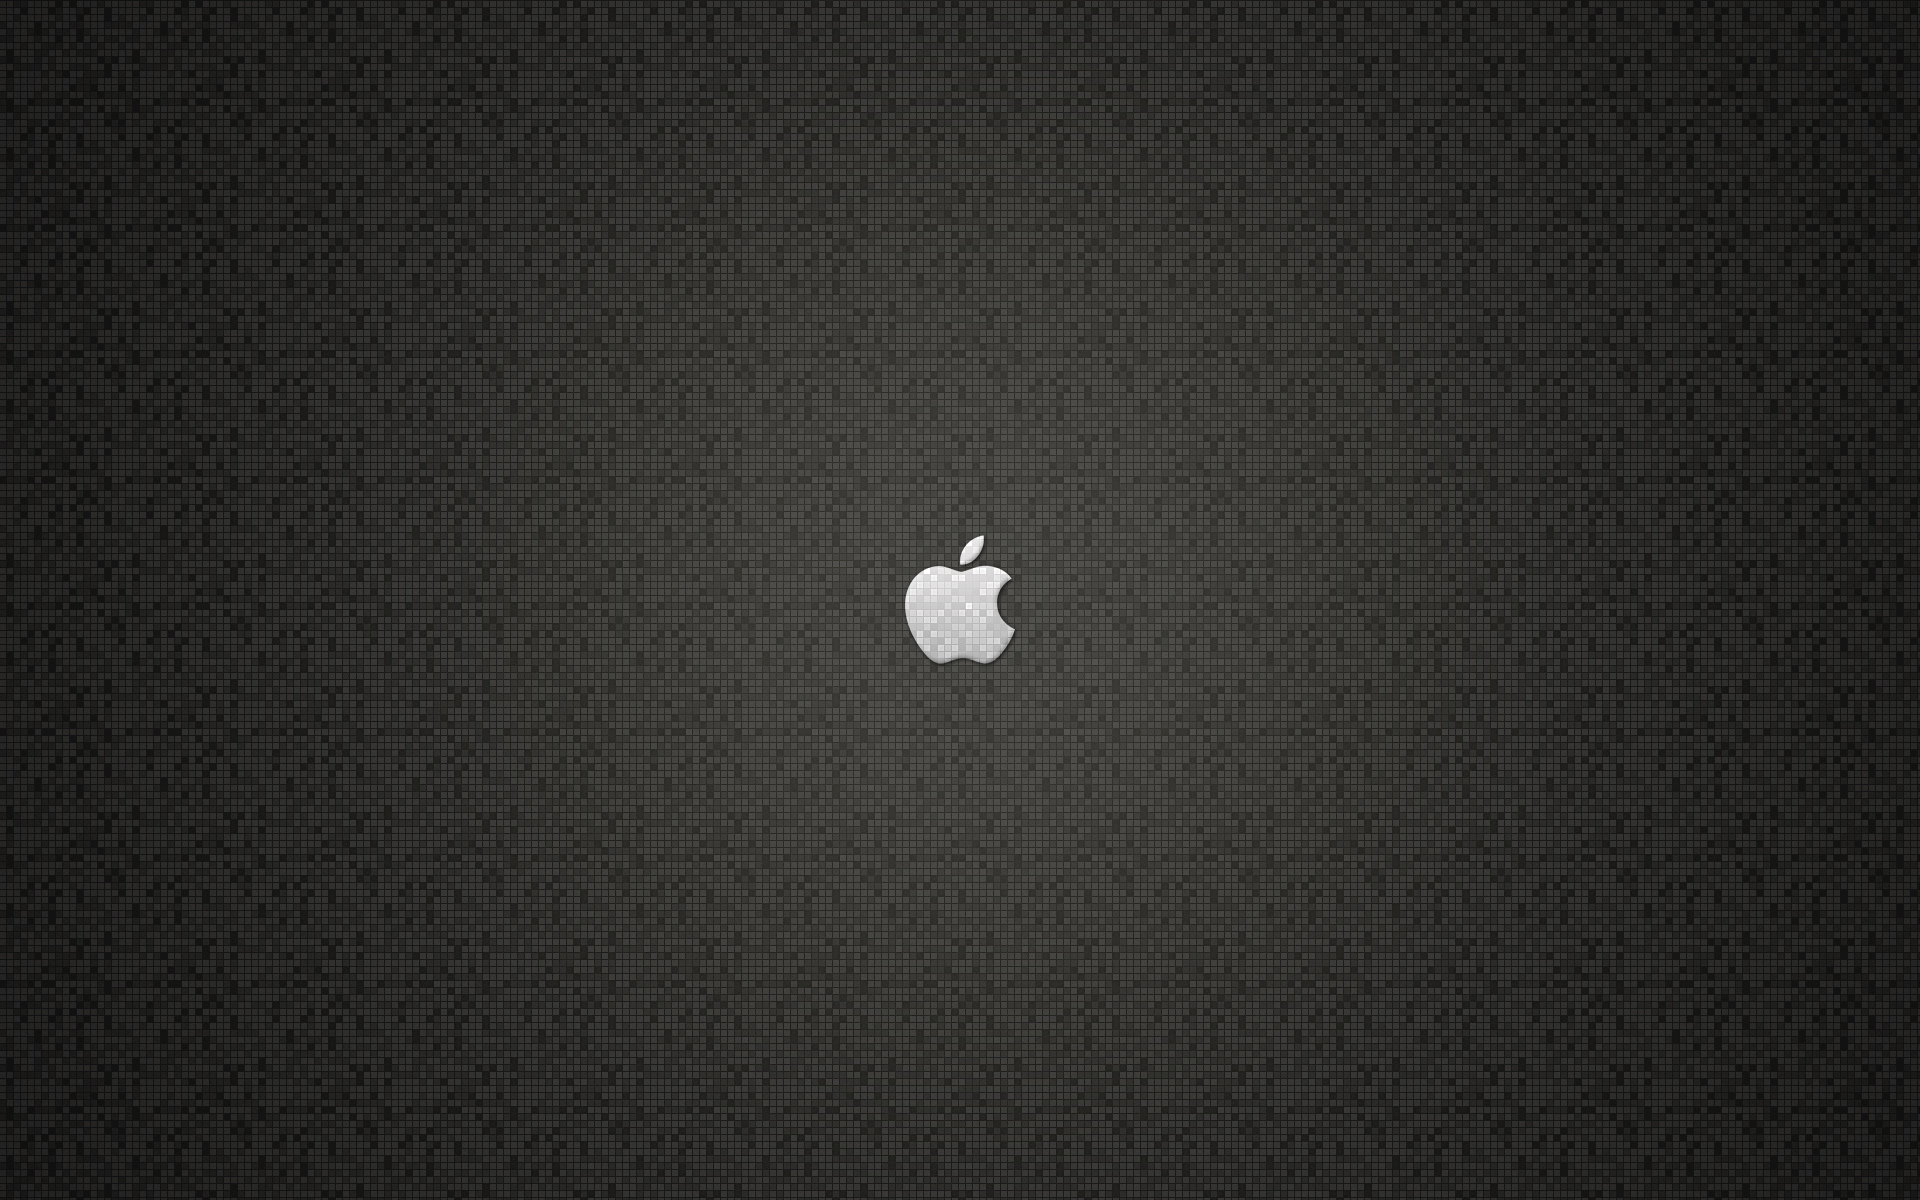 Apple Inc y Pixeles - 1920x1200